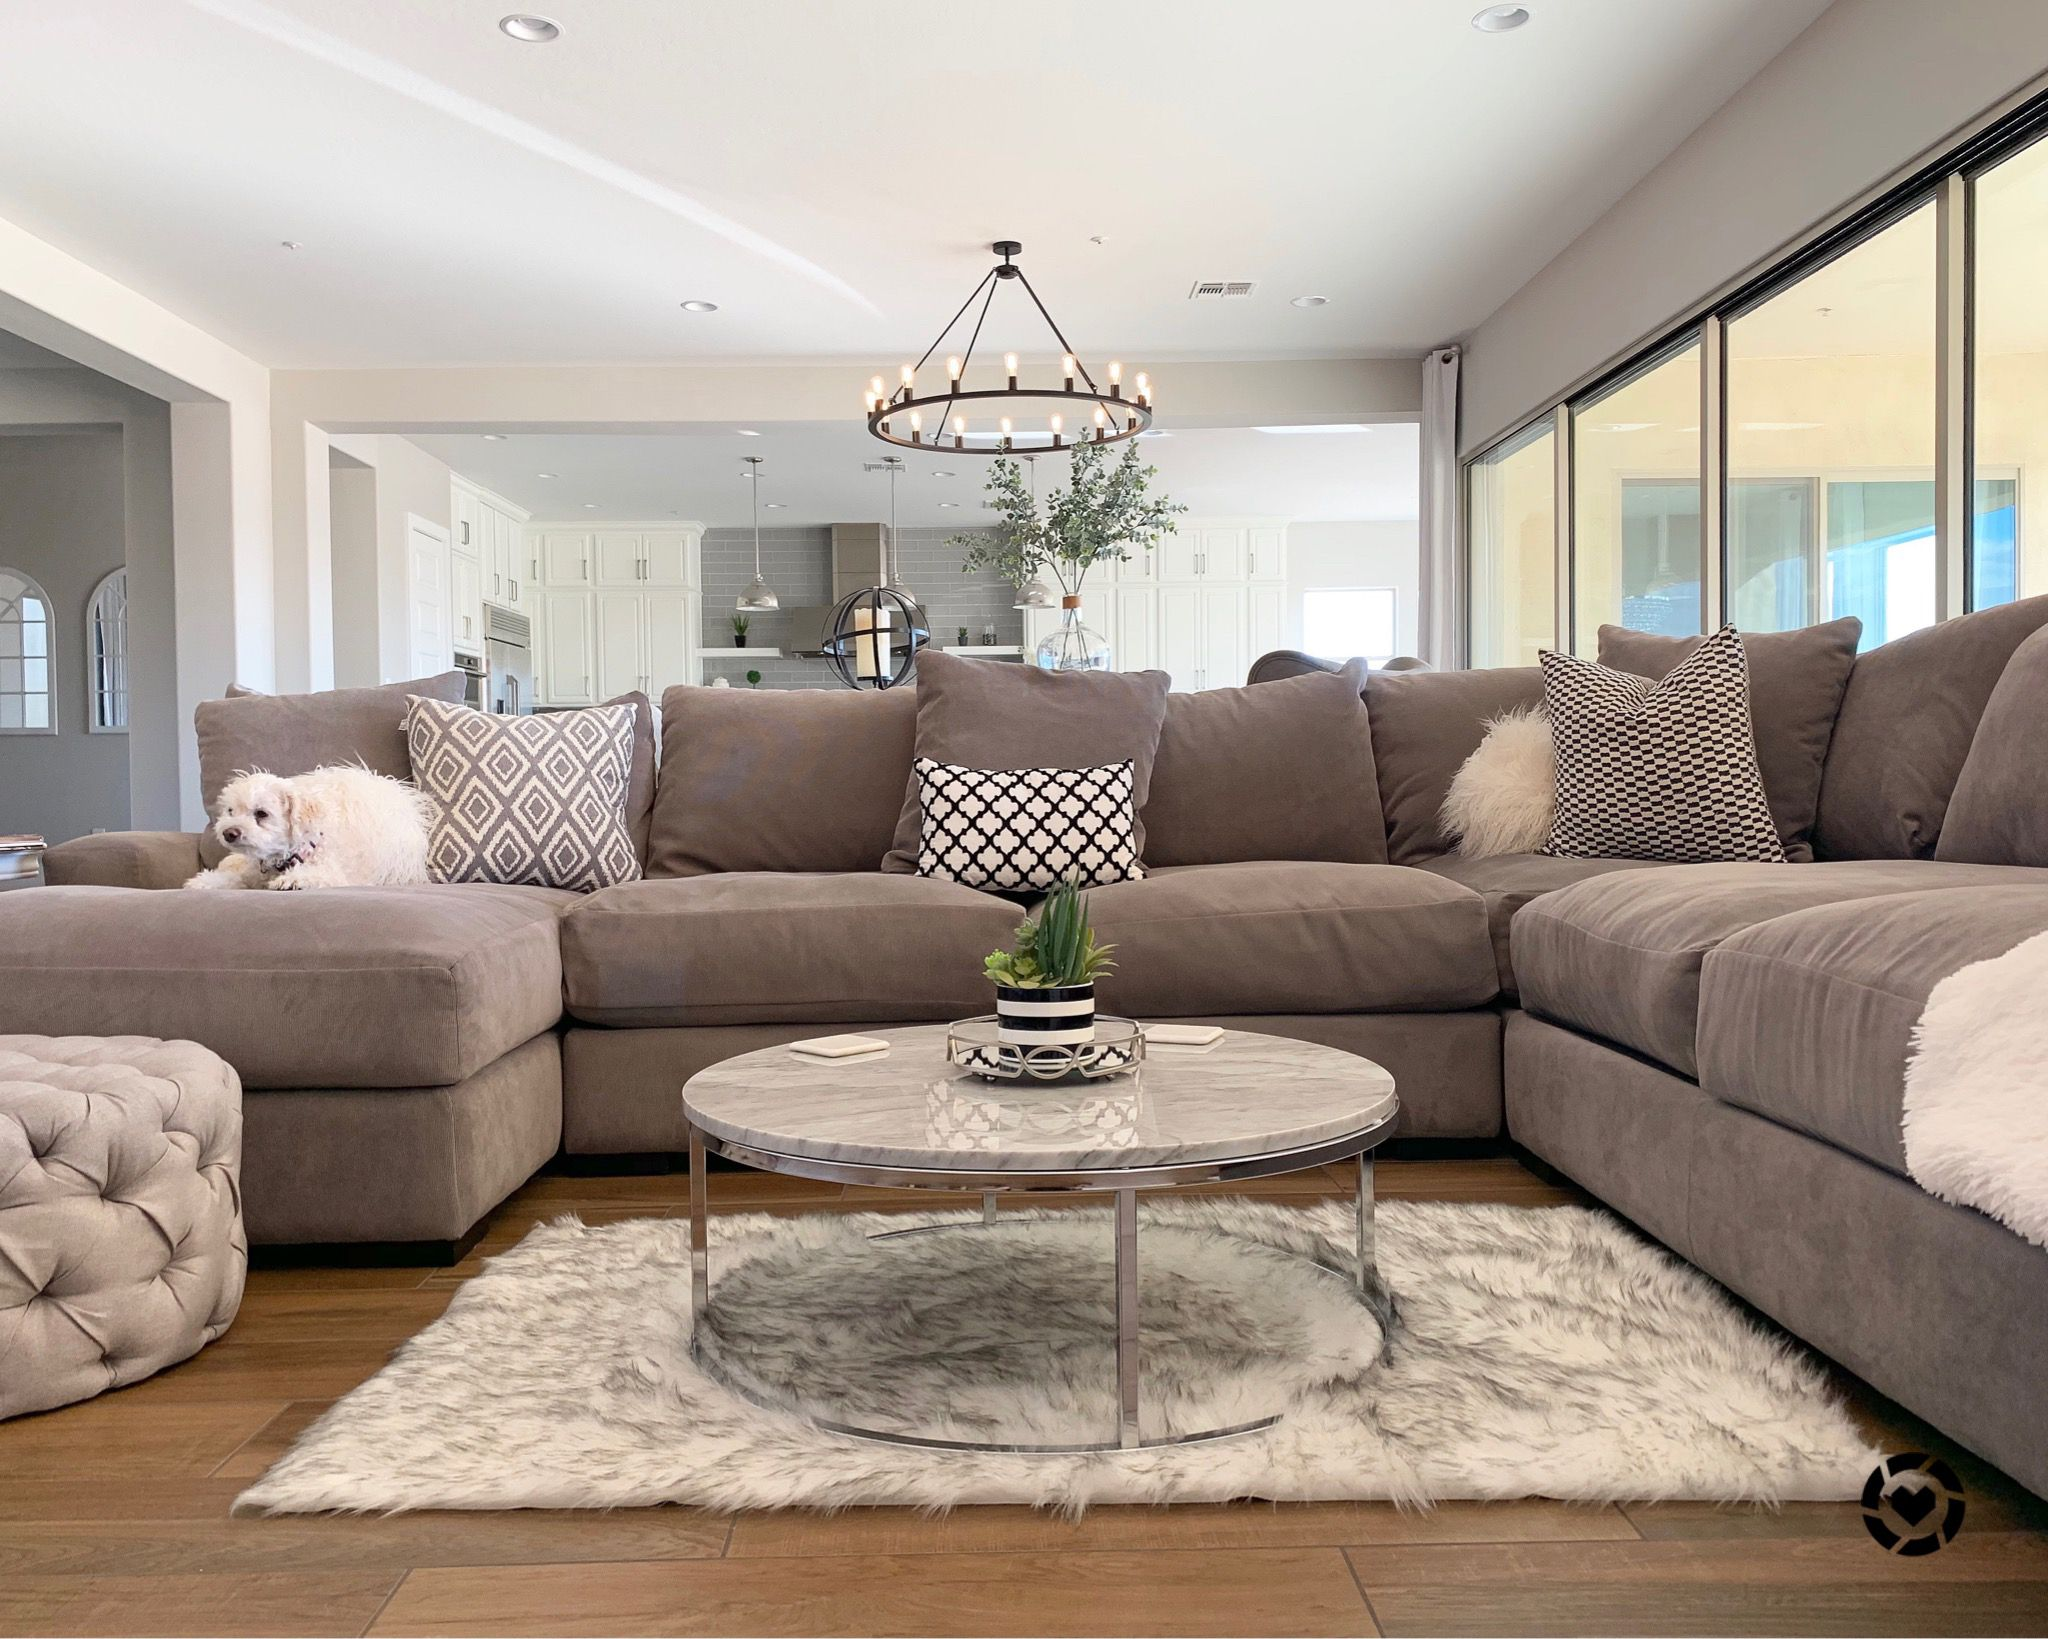 Great Room Sectional Couch Modern Farmhouse Glam Living Room Design Decor Farm House Living Room Living Room Remodel